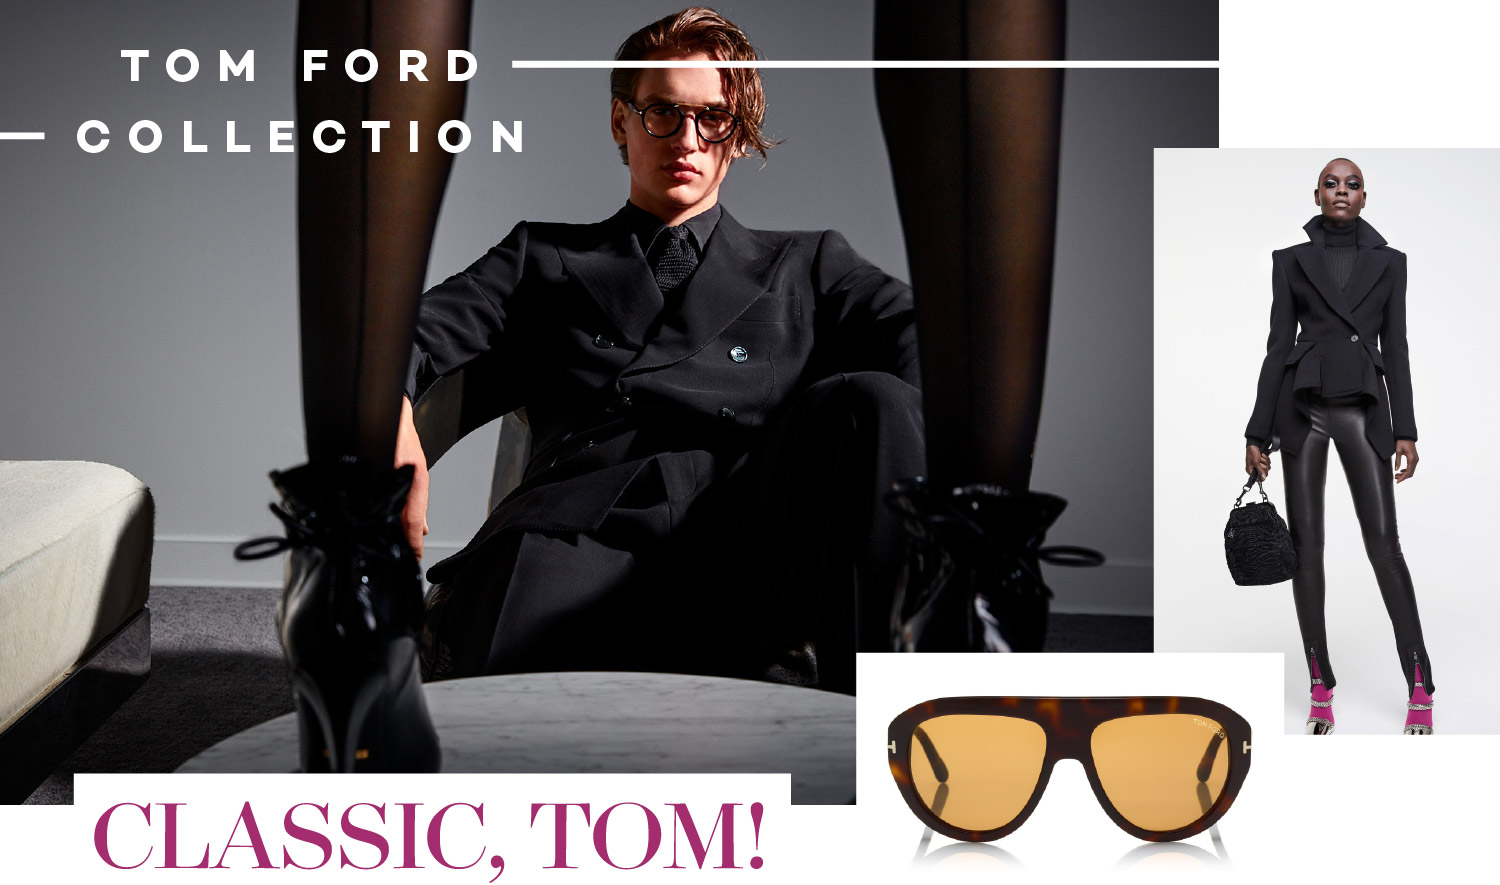 Eyesite-Tom-Ford-Collection-Nov-2017_1.jpg